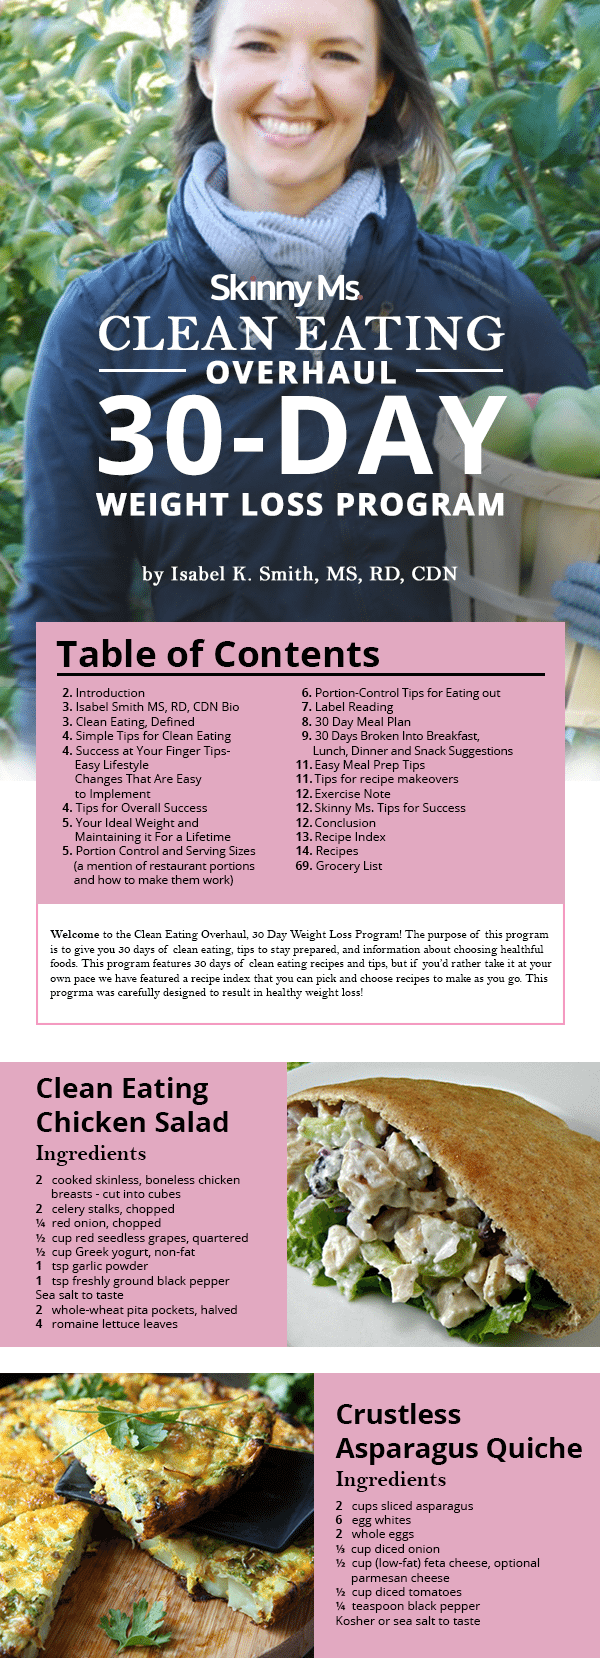 Clean Eating Overhaul 30 Day Weight Loss Program